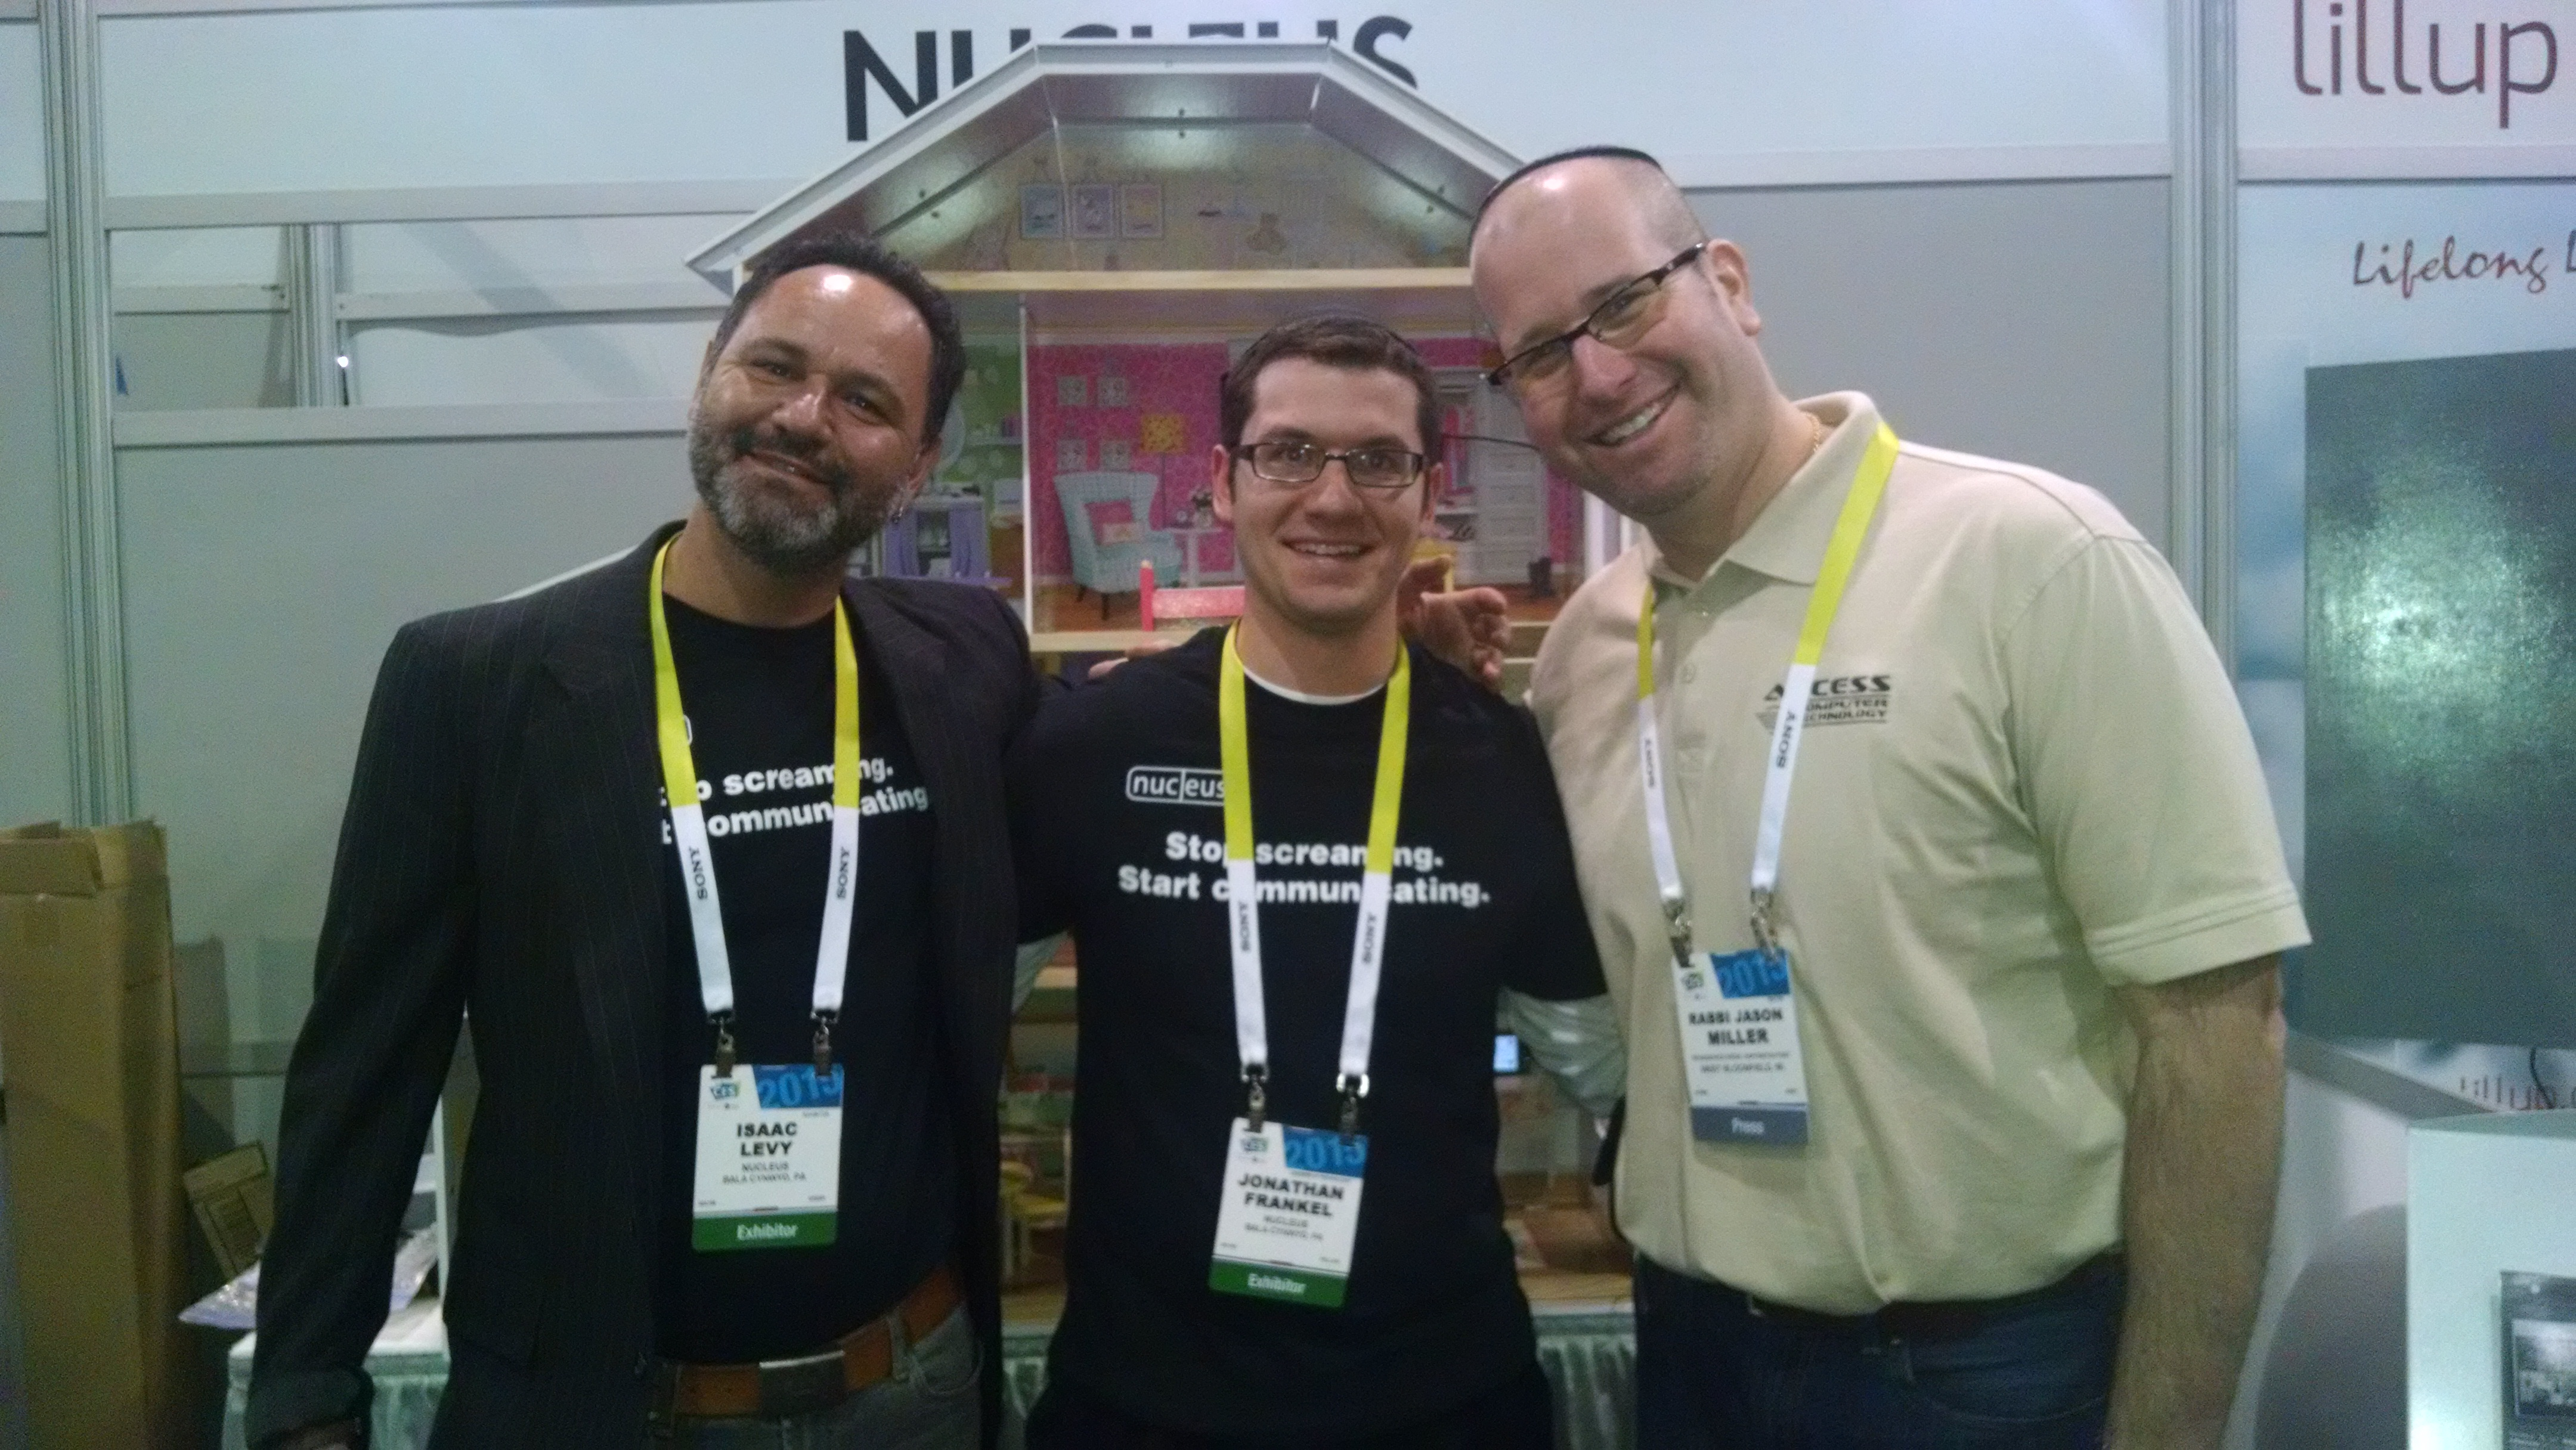 Isaac Levy & Jonathan Frankel of Nucleus